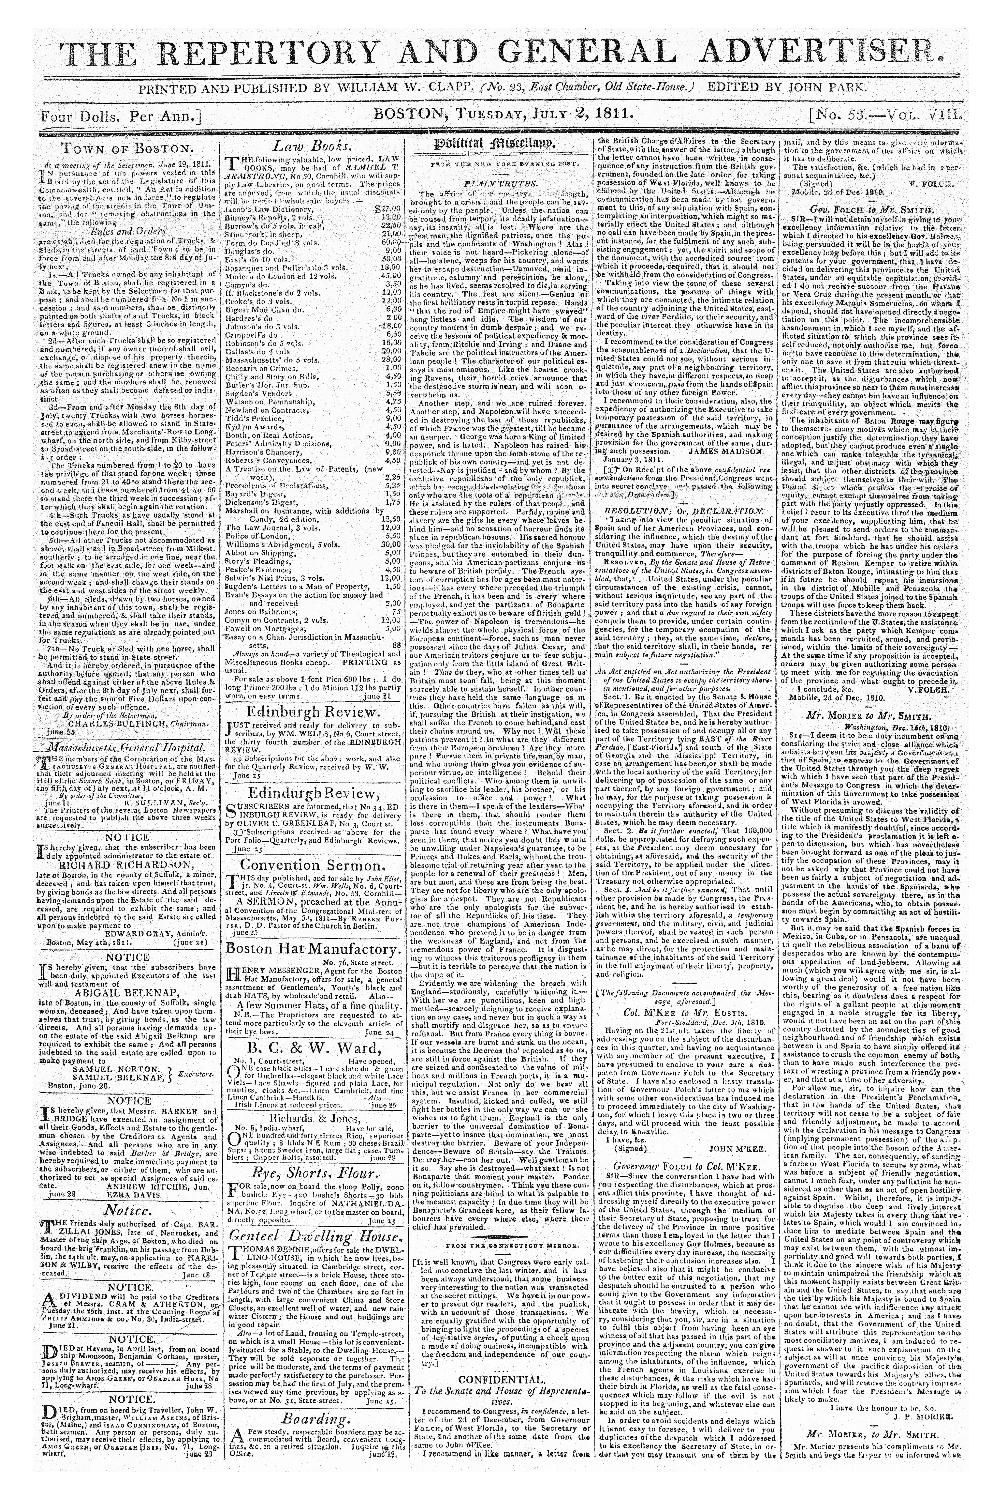 The Repertory and general advertiser - page 1